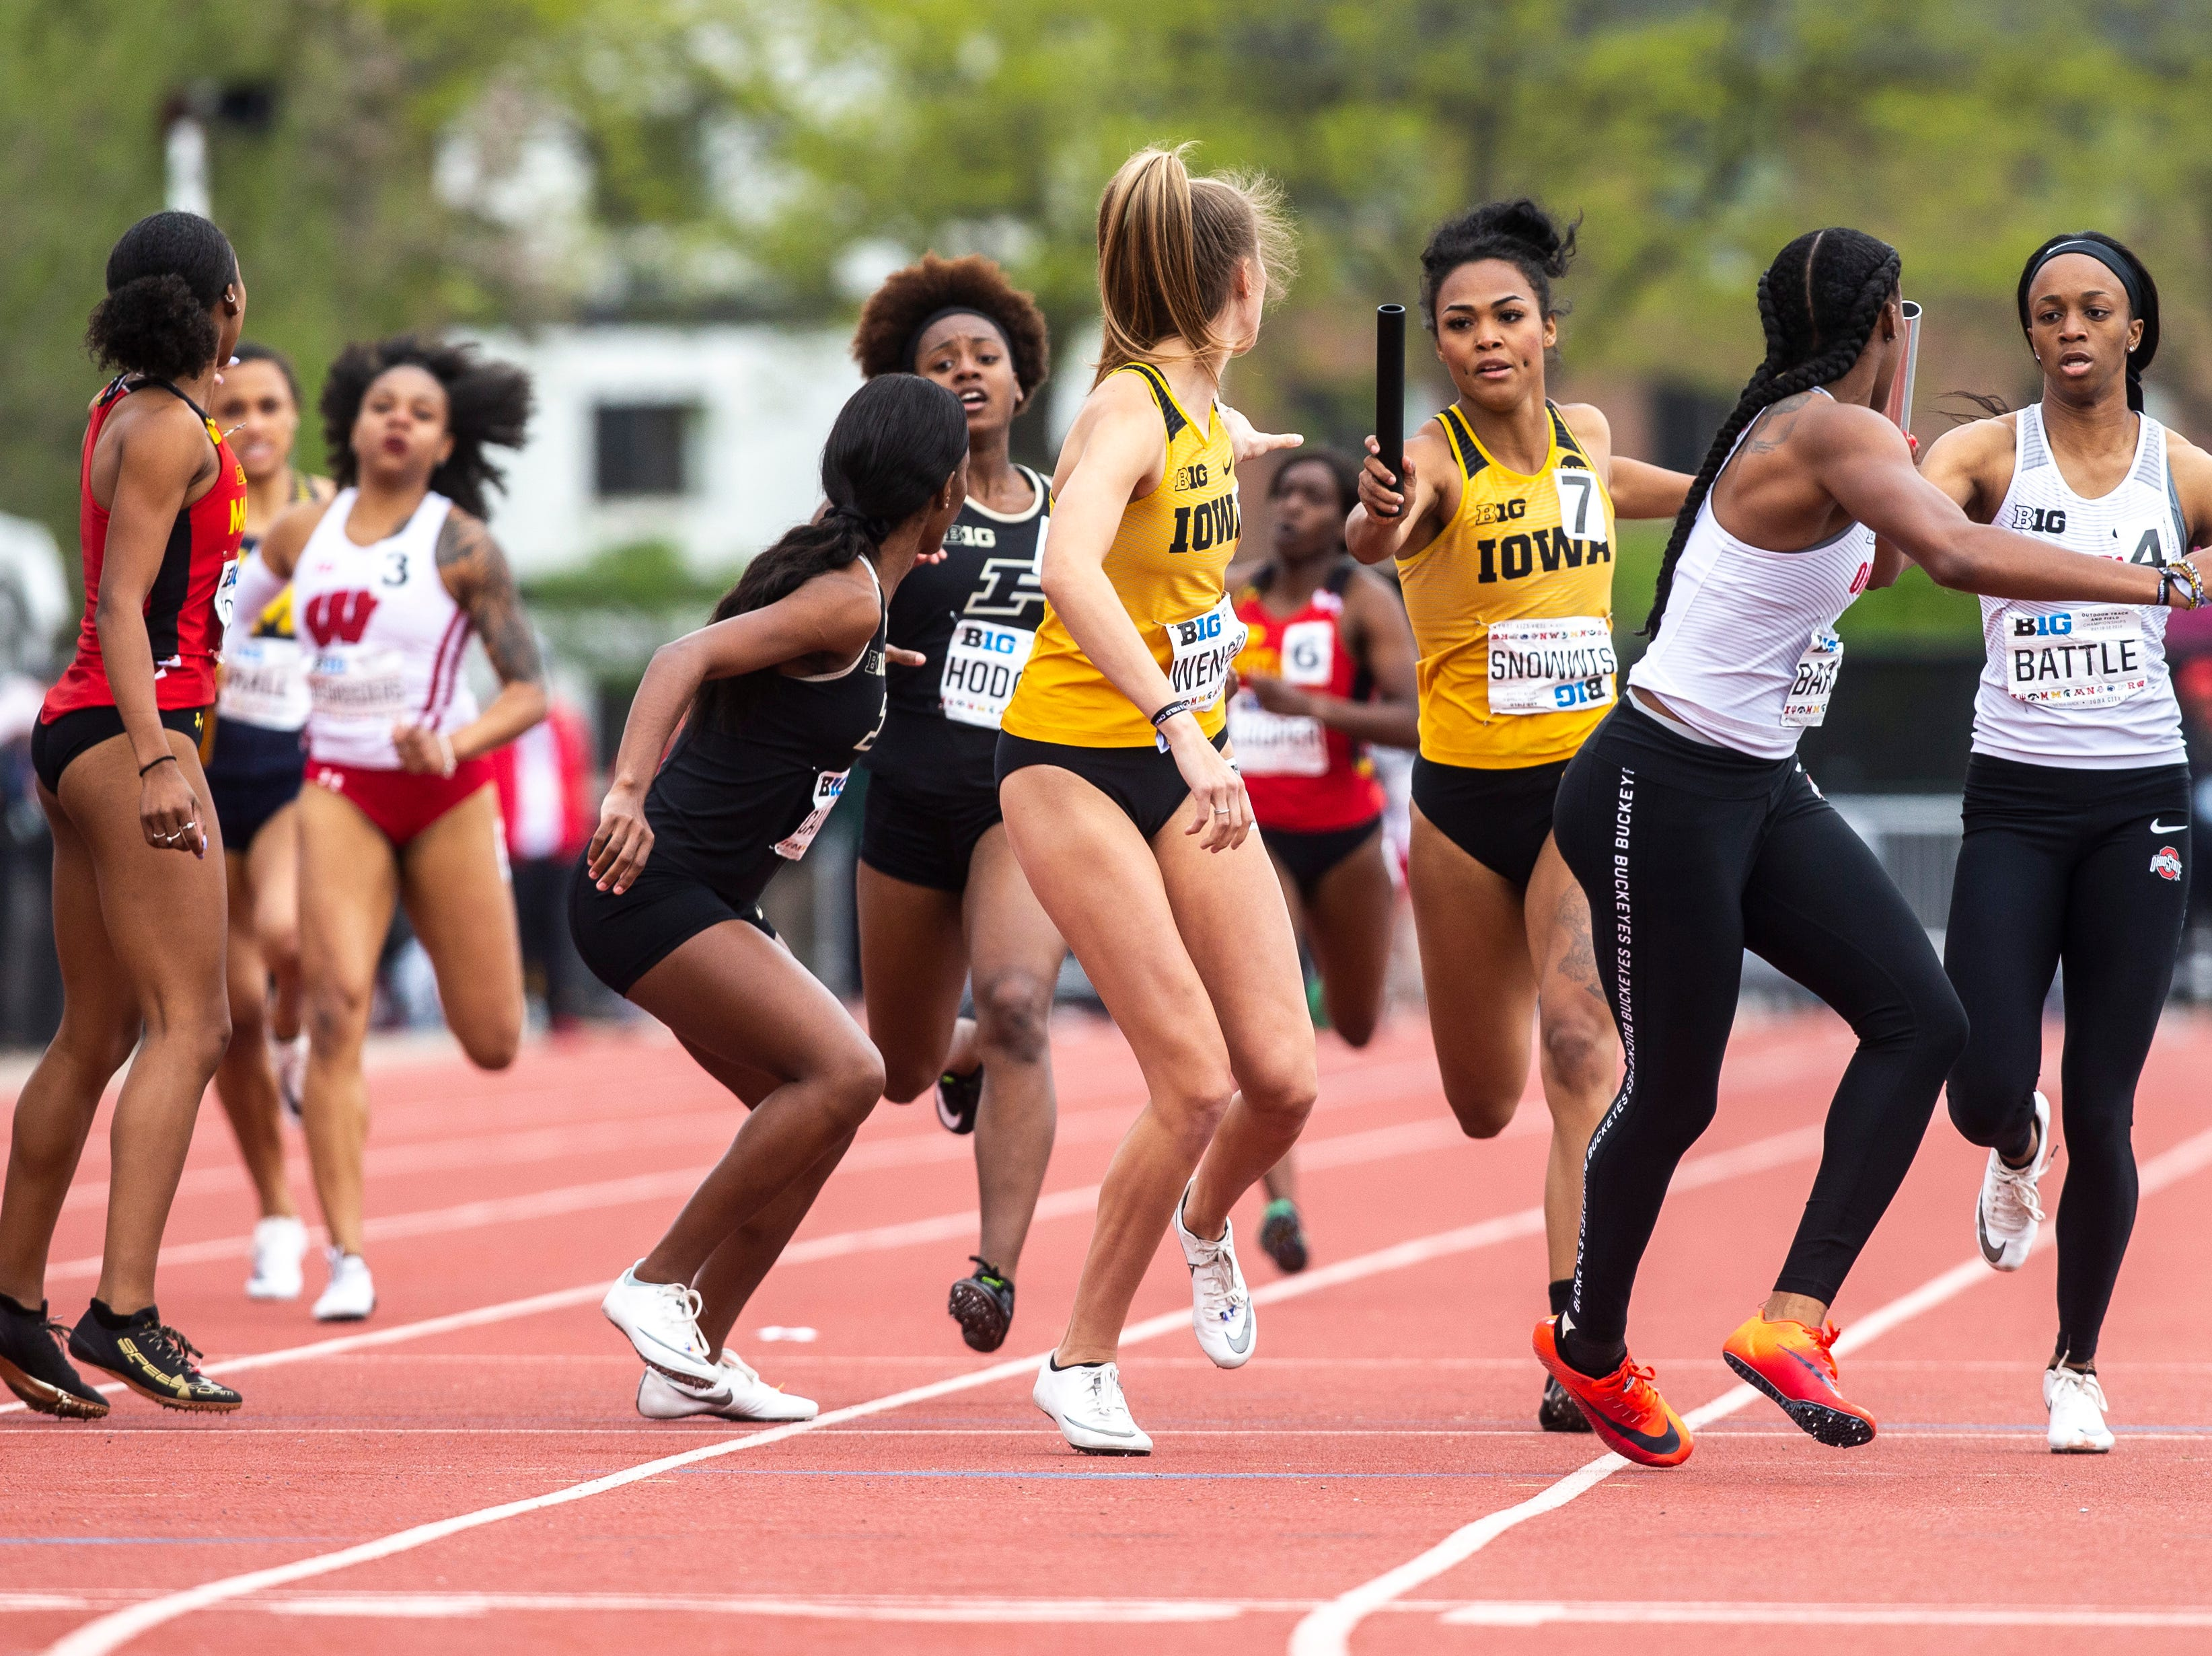 Iowa's Tria Simmons gives a handoff during the final day of Big Ten track and field outdoor championships, Sunday, May 12, 2019, at Francis X. Cretzmeyer Track on the University of Iowa campus in Iowa City, Iowa.